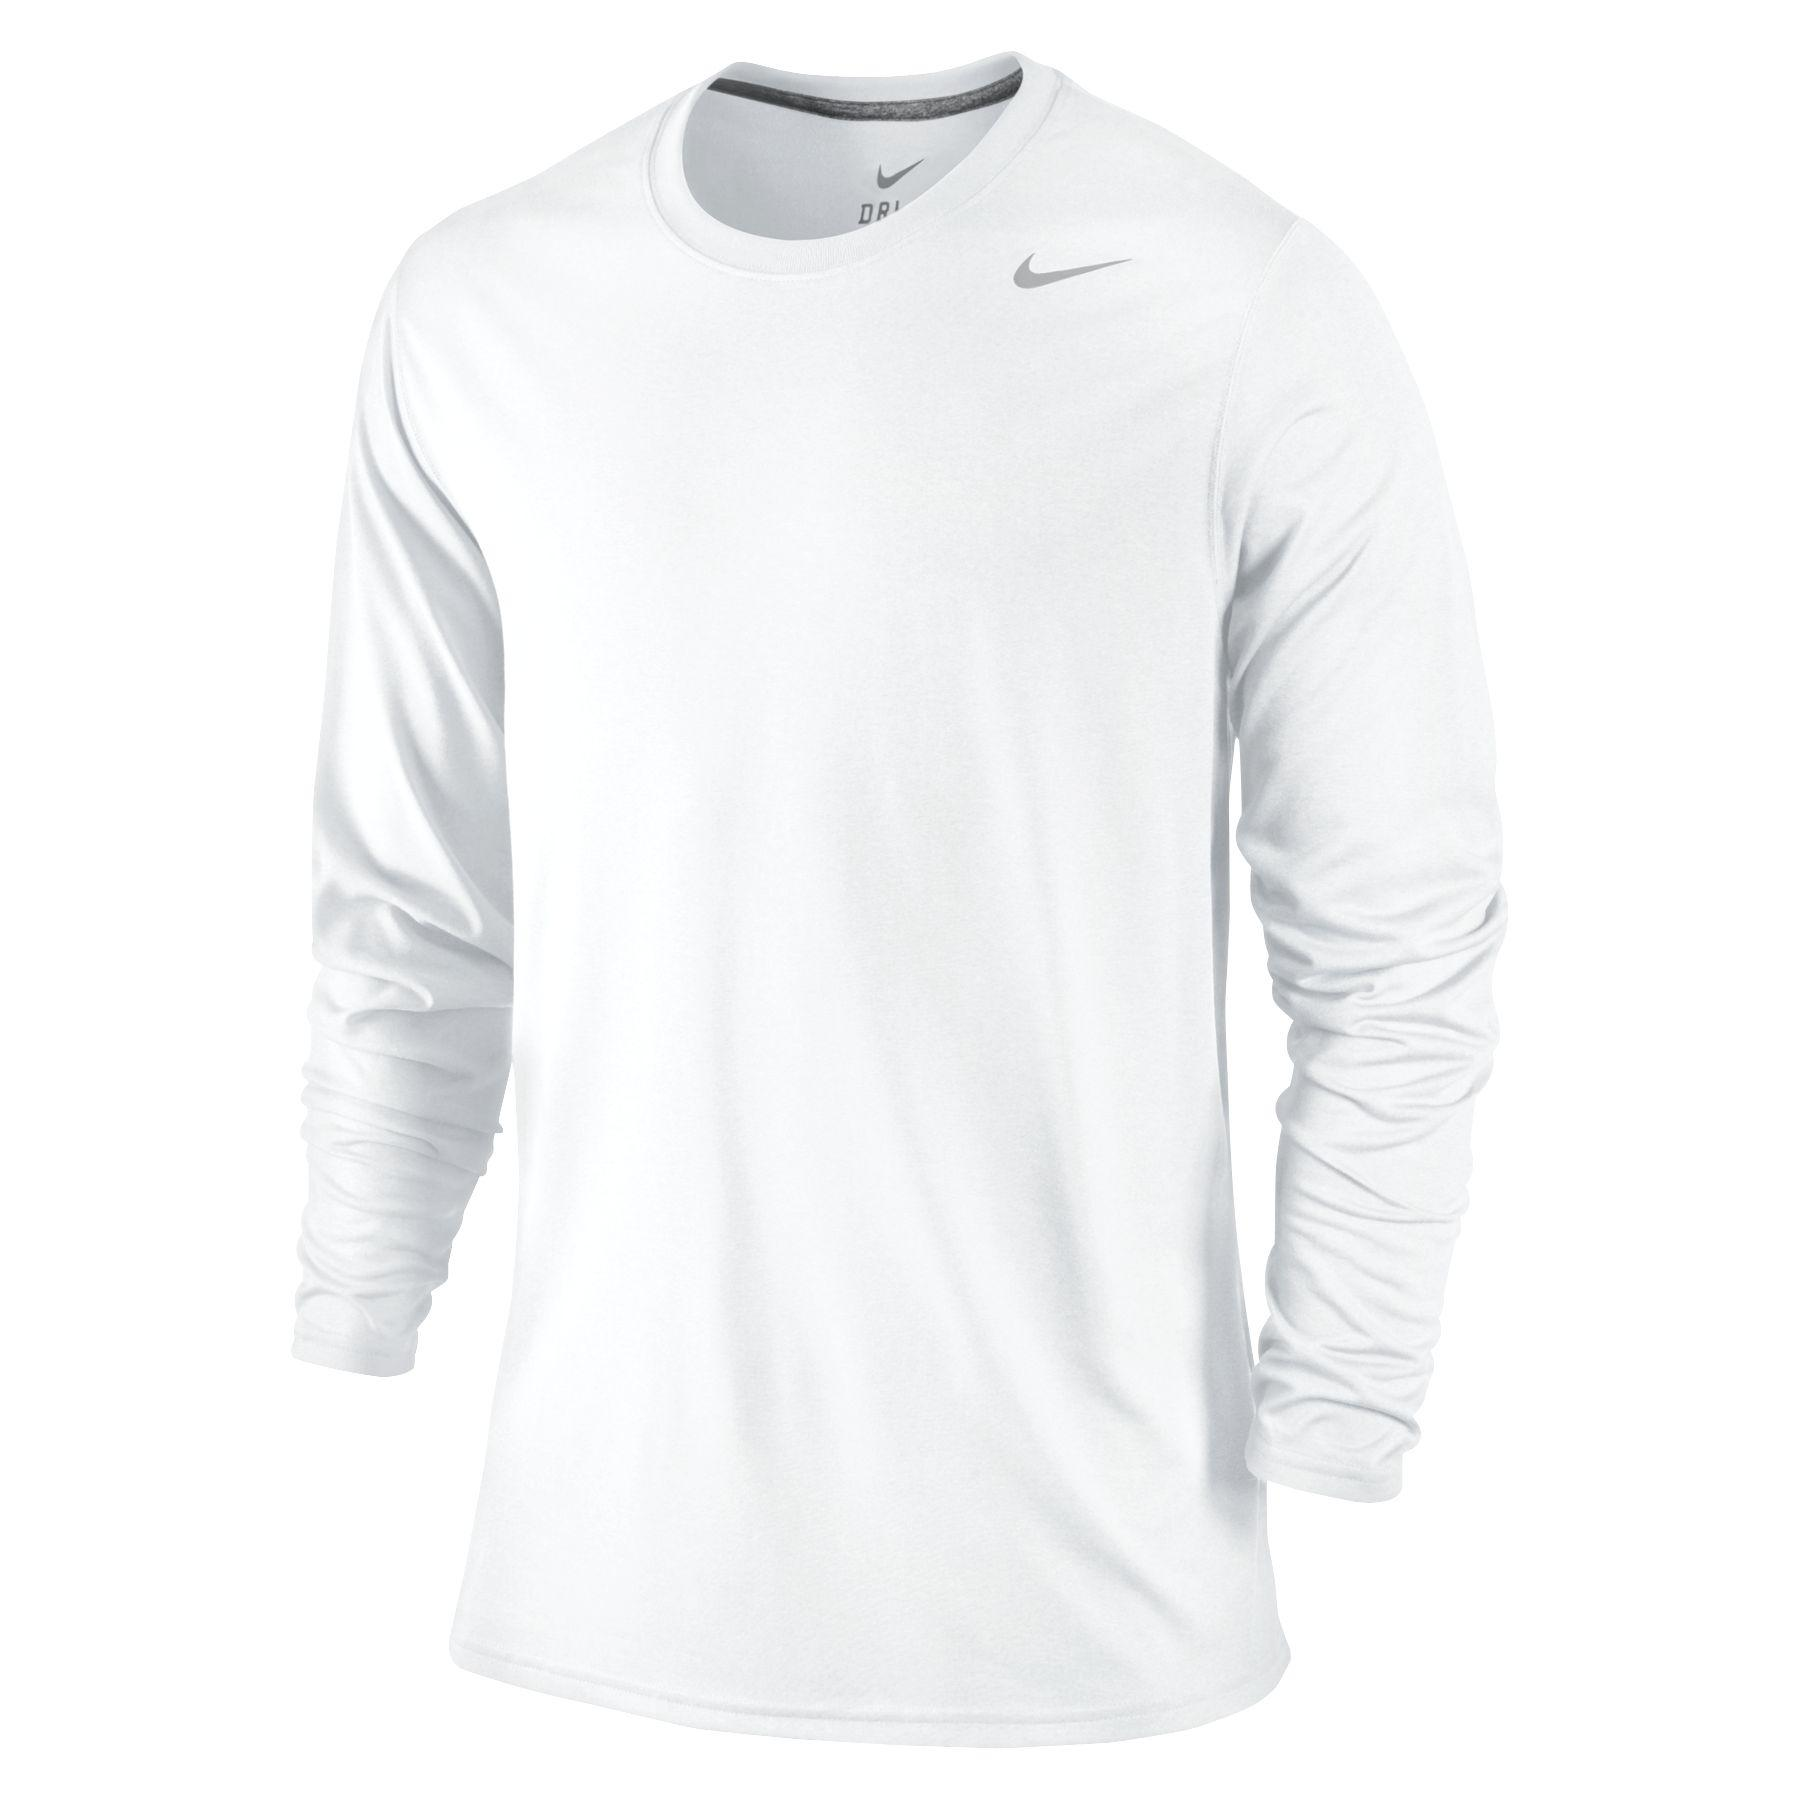 1d2f8a2d Lyst - Nike Long Sleeve Legend T-shirt in White for Men